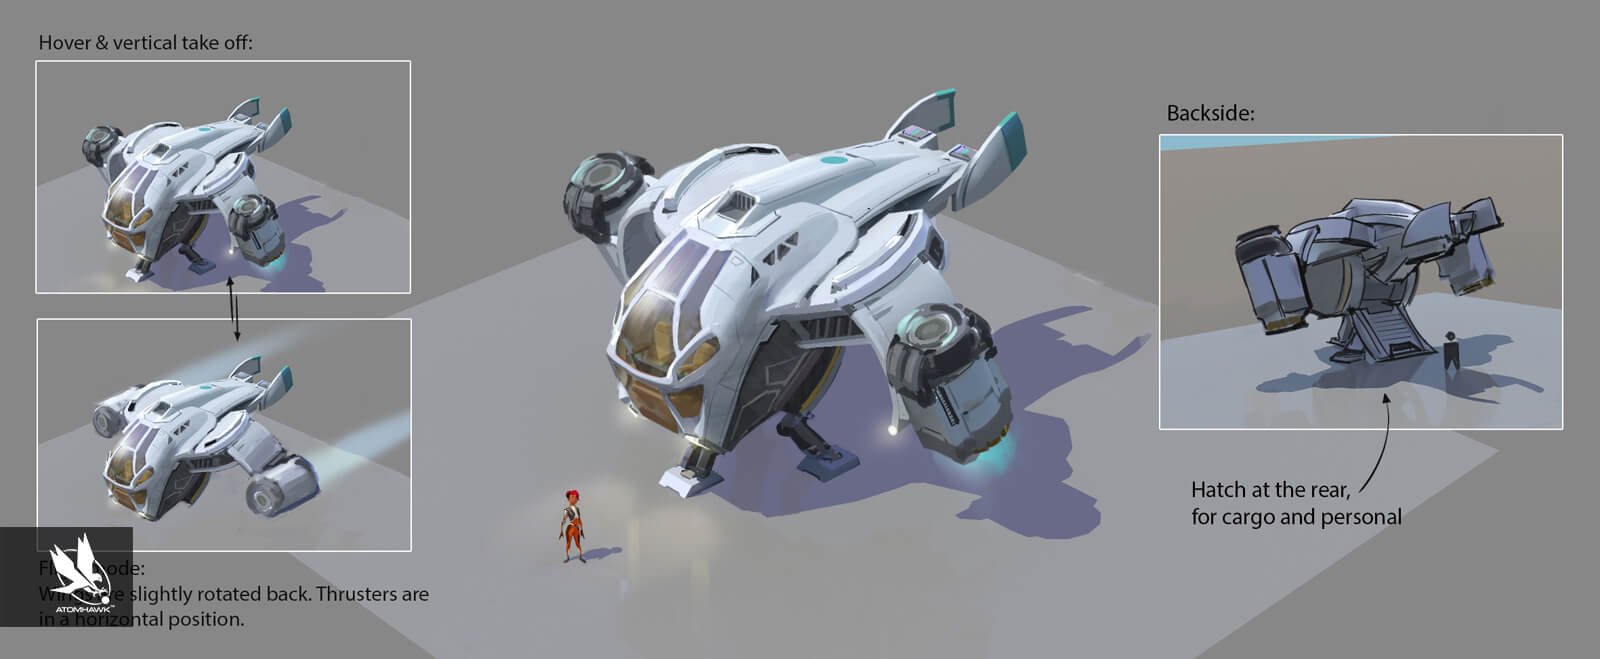 Atomhawk_News_May 2018_Case Study_Unity 3D Game Kit_Drop Ship Sketch.jpg